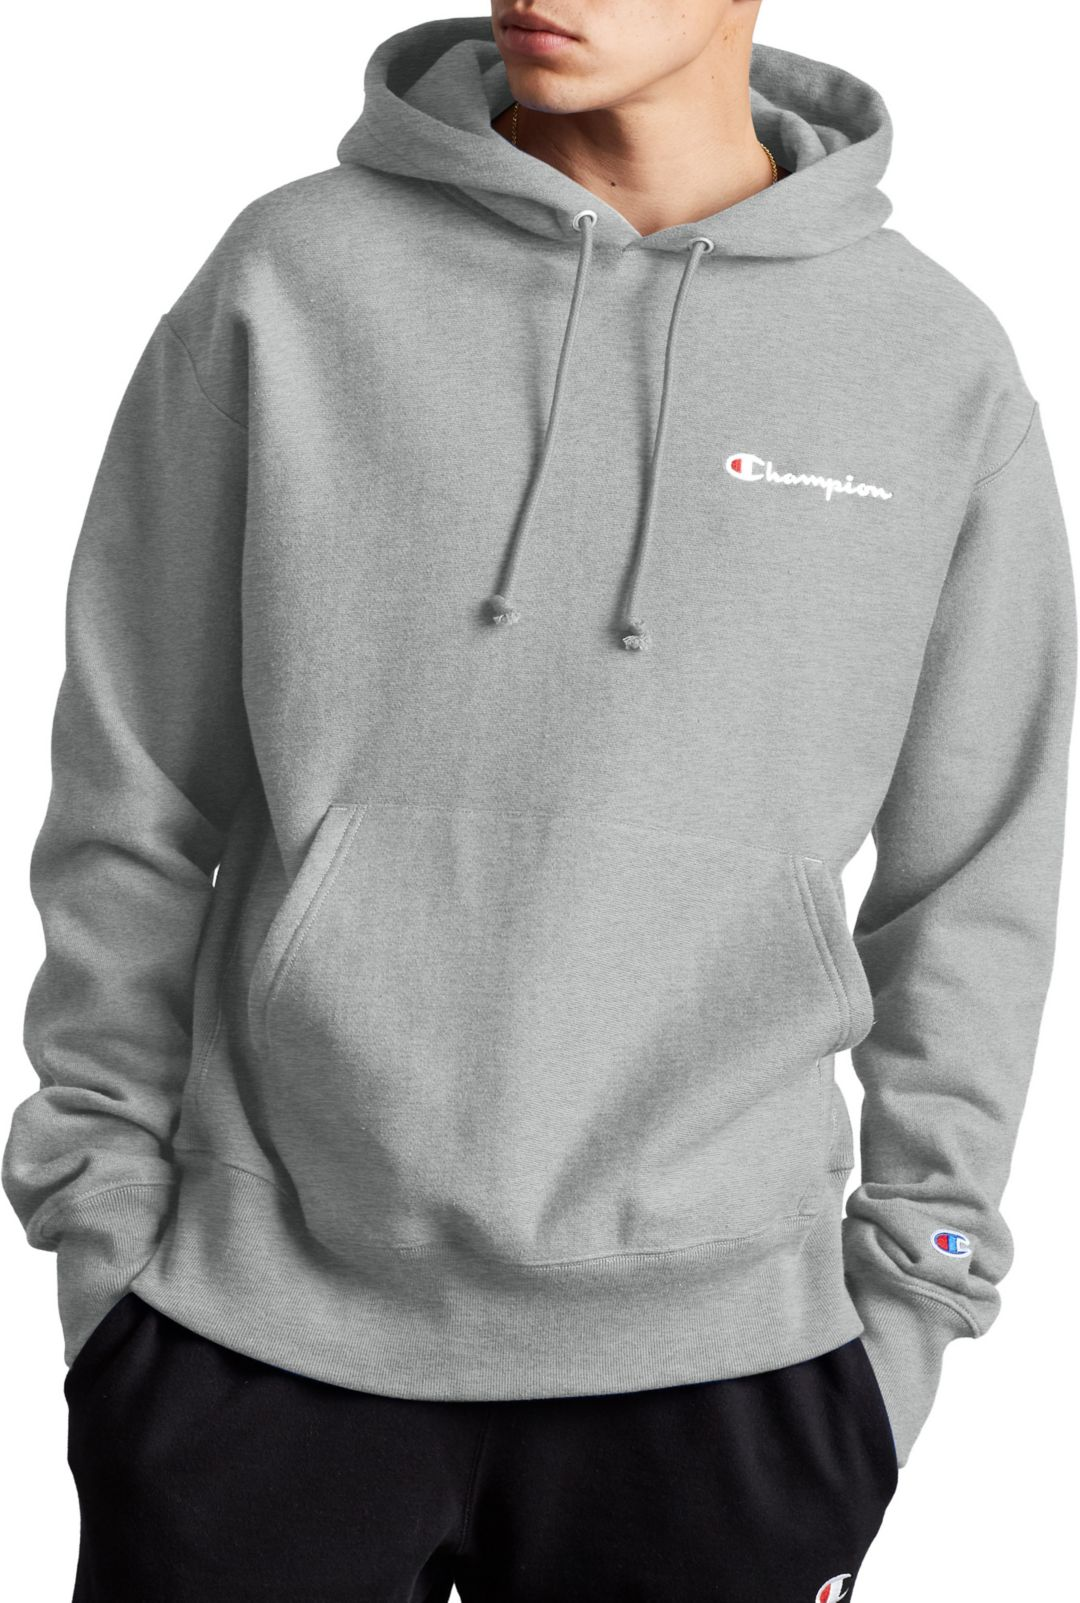 uk availability 1cdff 1a19a Champion Life Men's Reverse Weave Script Logo Pullover Hoodie